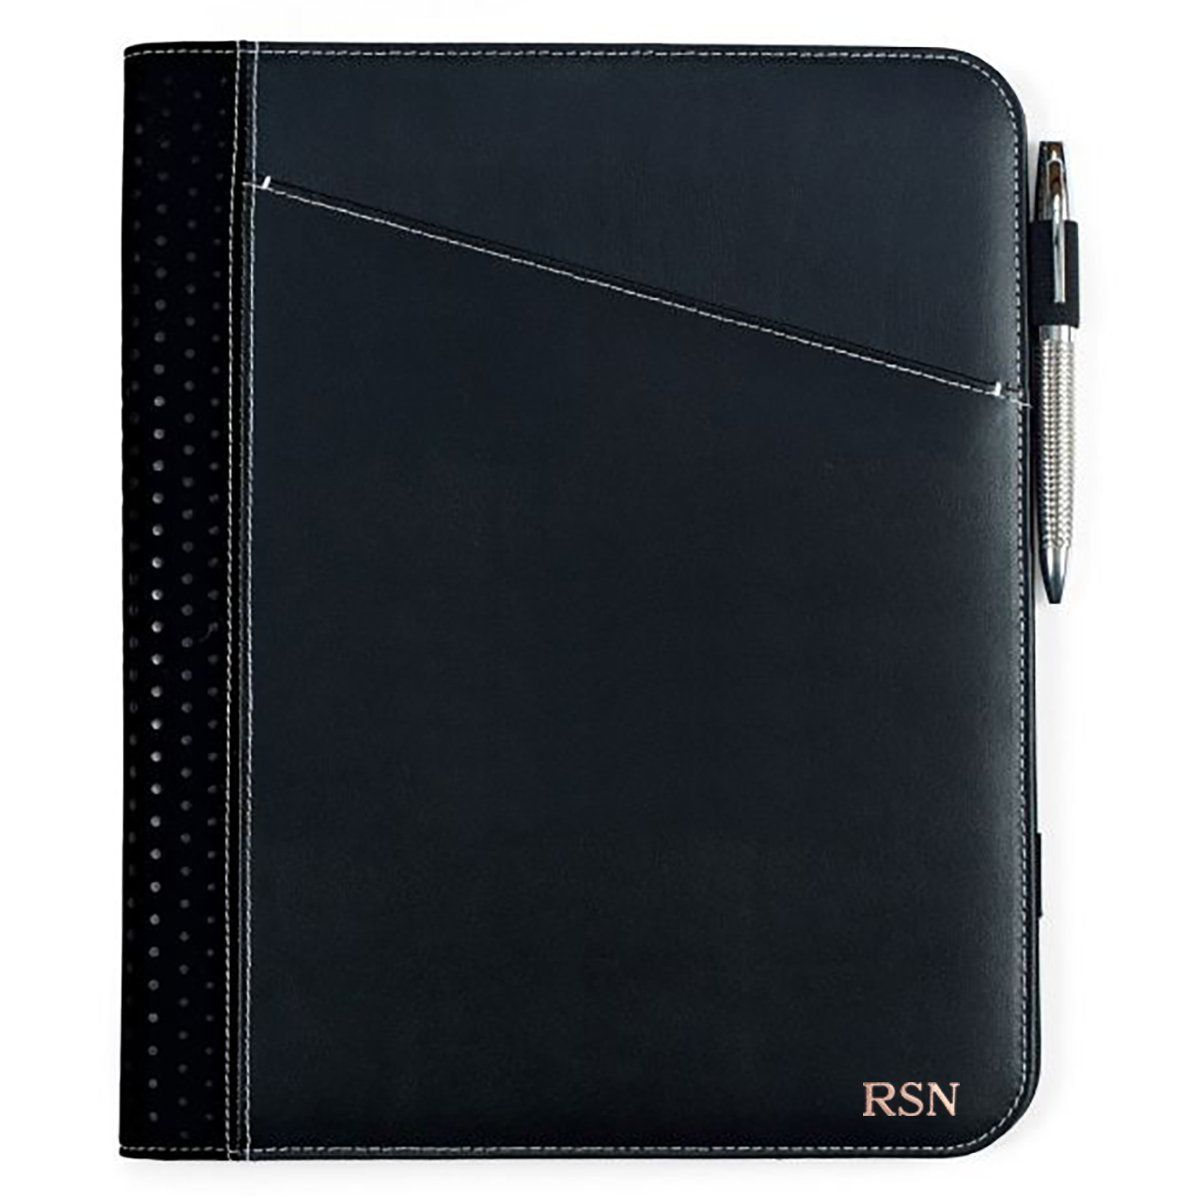 Personalized Borello Cedar Black Leather Writing Pad